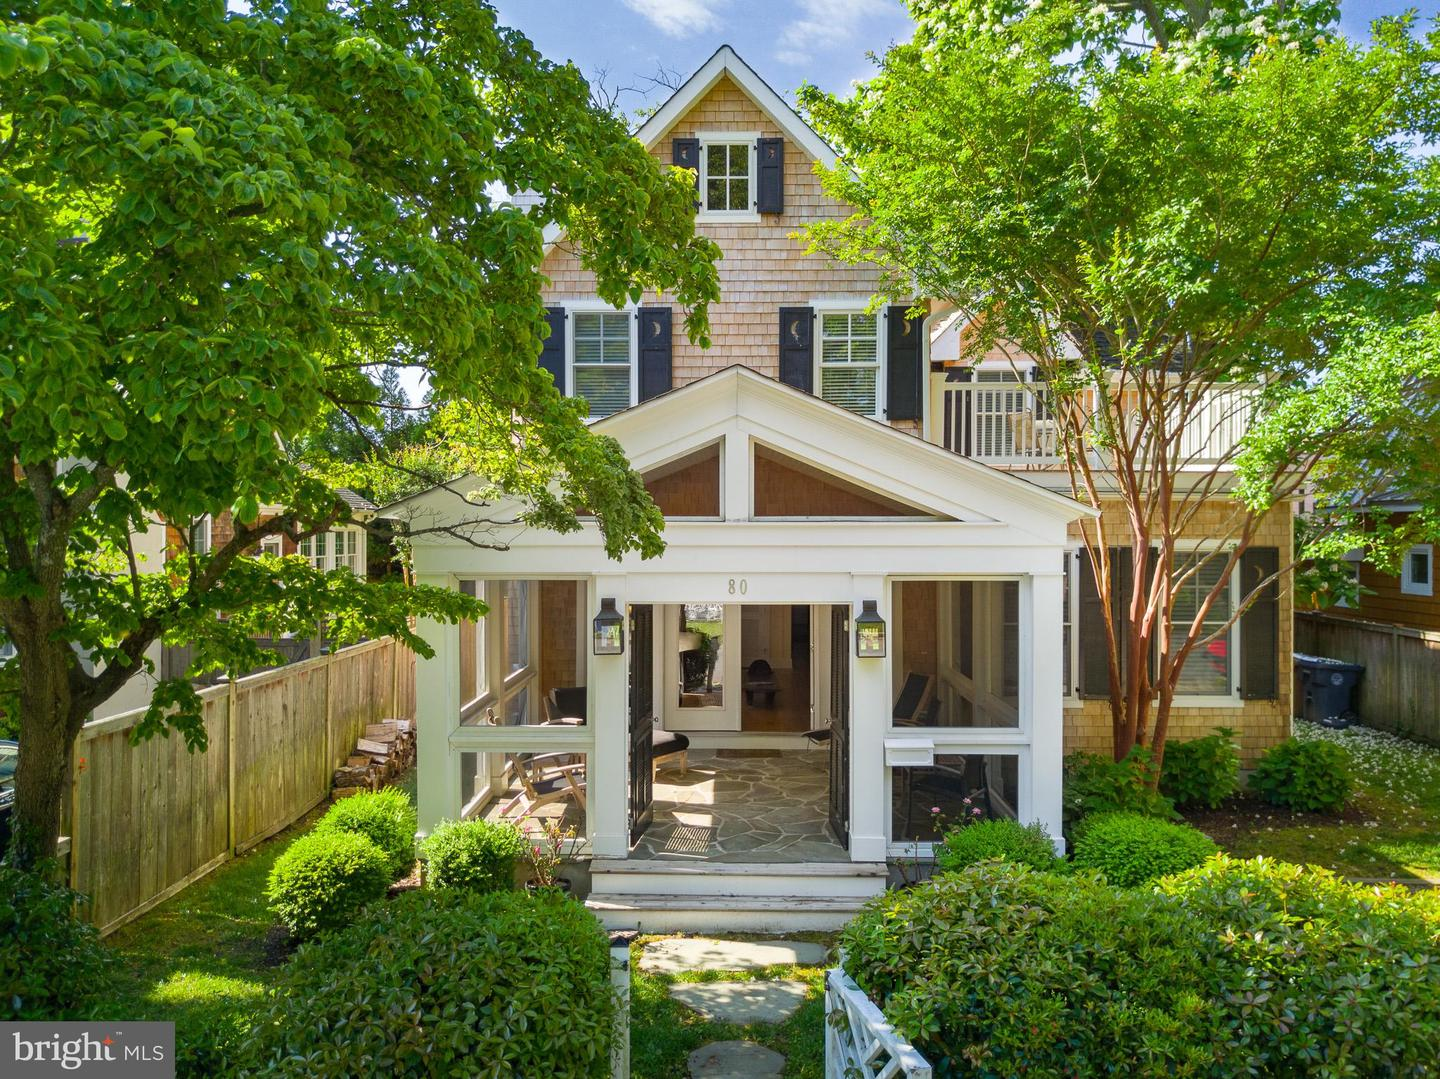 Single Family for Sale at 80 Sussex St Rehoboth Beach, Delaware 19971 United States